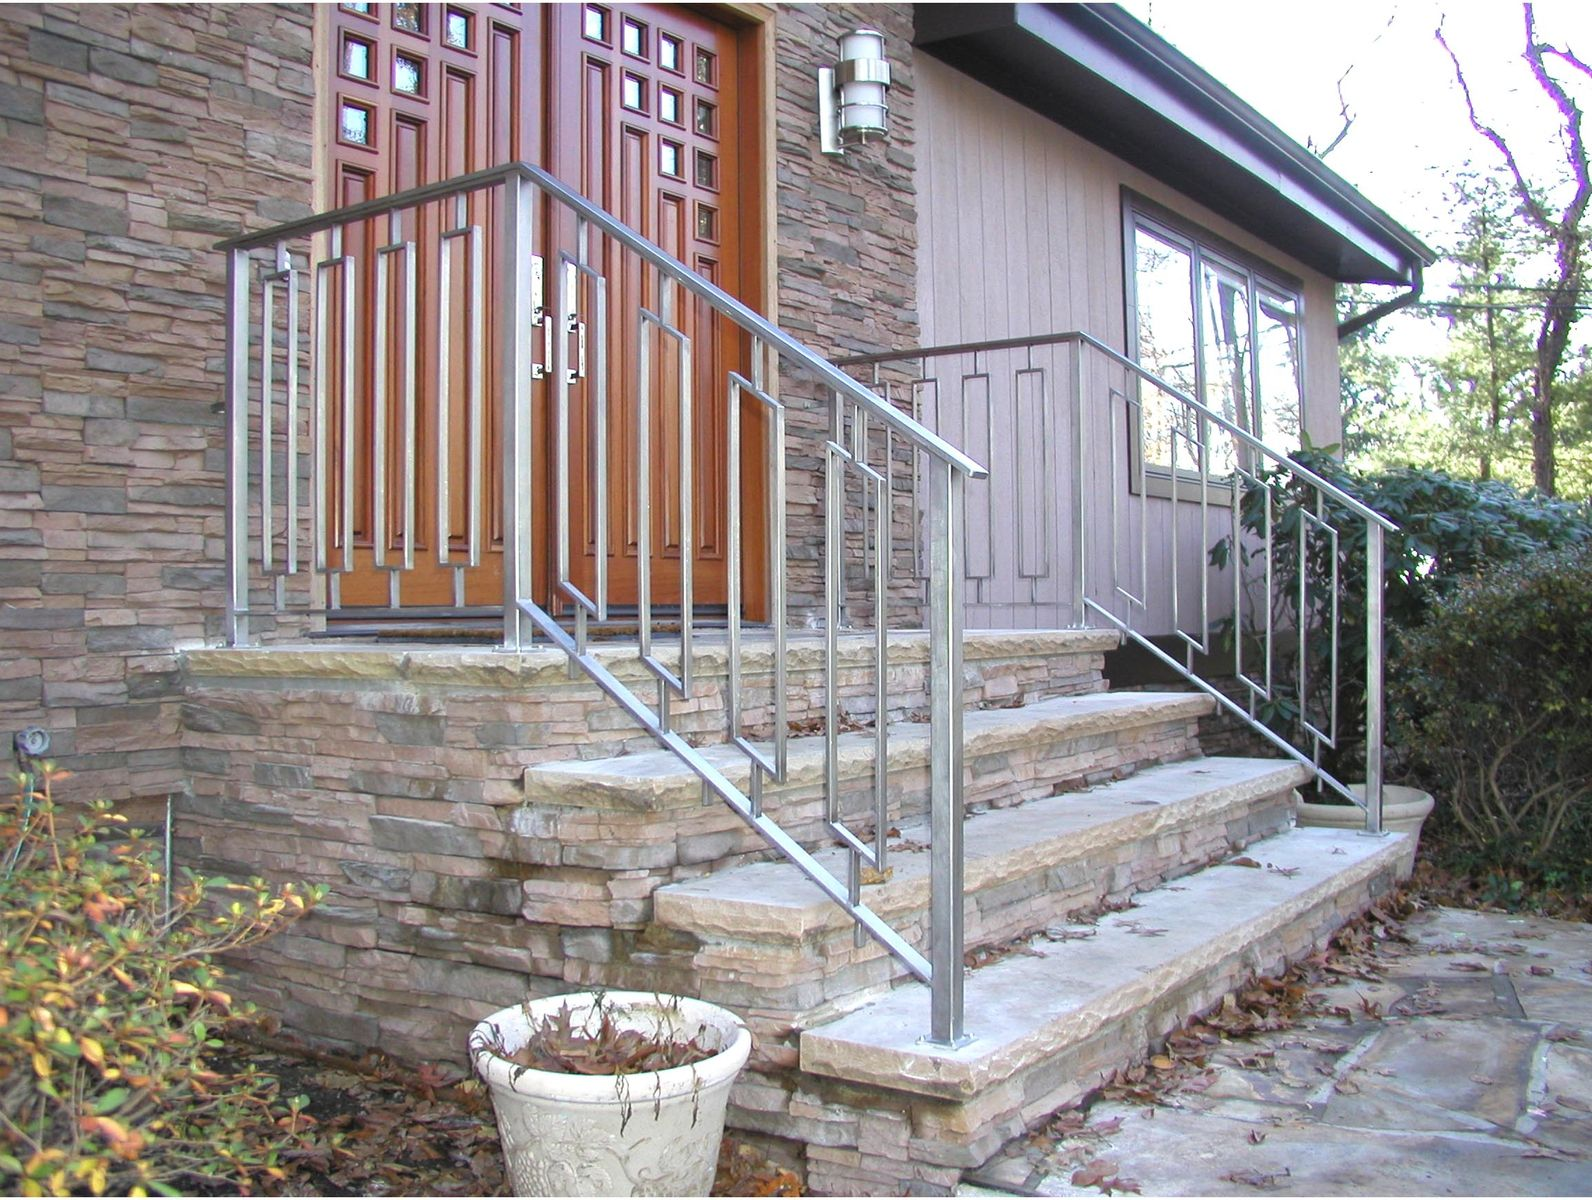 Best Custom Made Greenan Exterior Entry Railing For The Home Pinterest Exterior Railings And 400 x 300